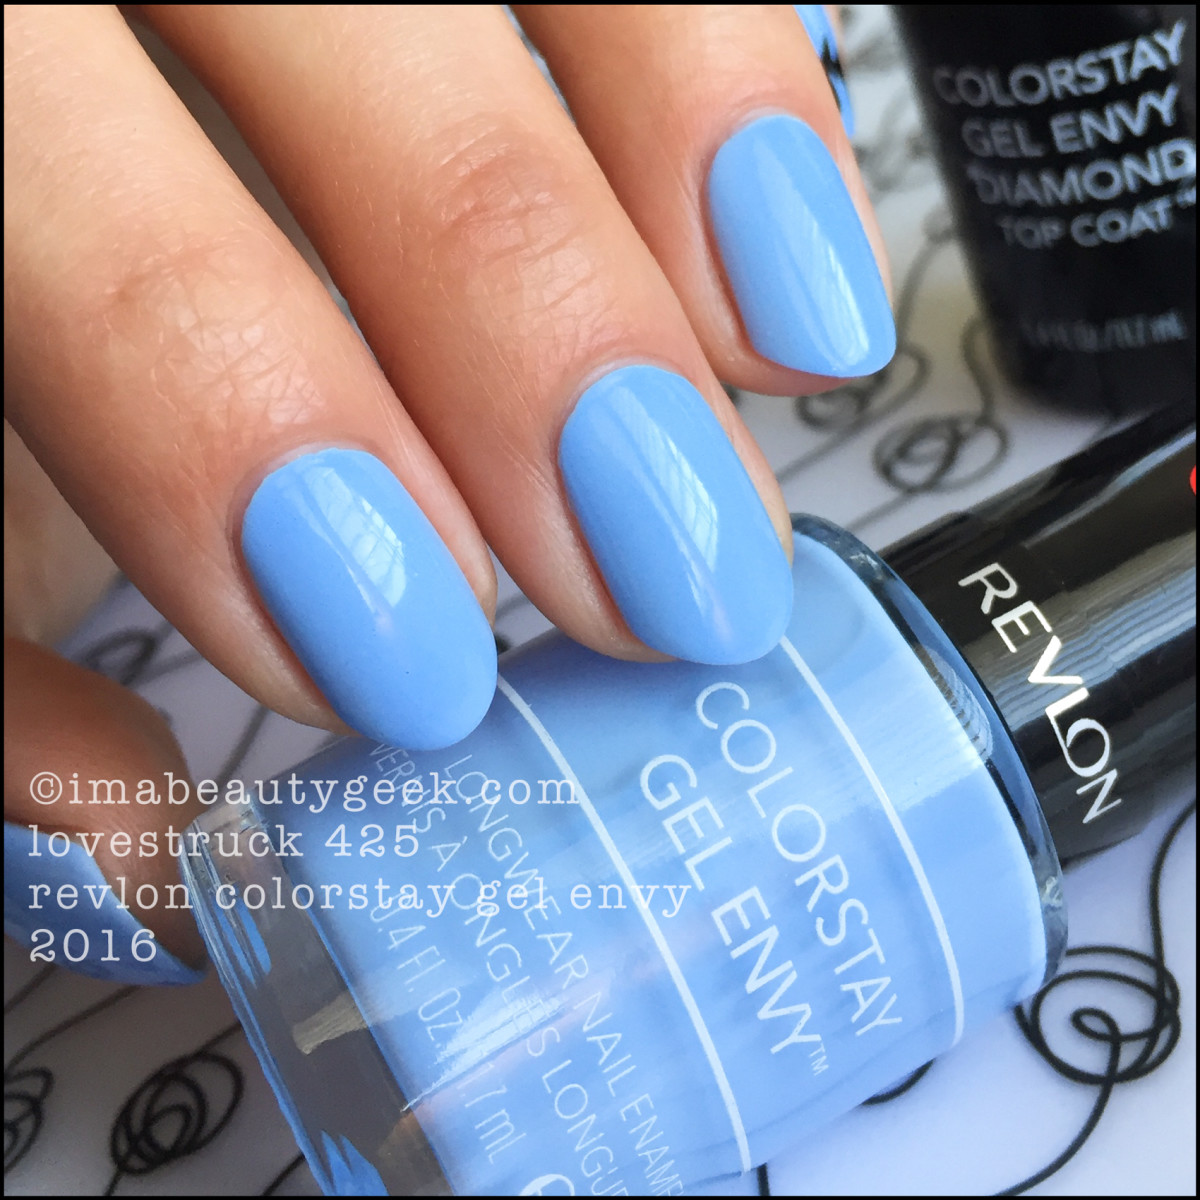 Revlon Gel Envy Lovestruck 425_Revlon Colorstay Gel Envy 2016